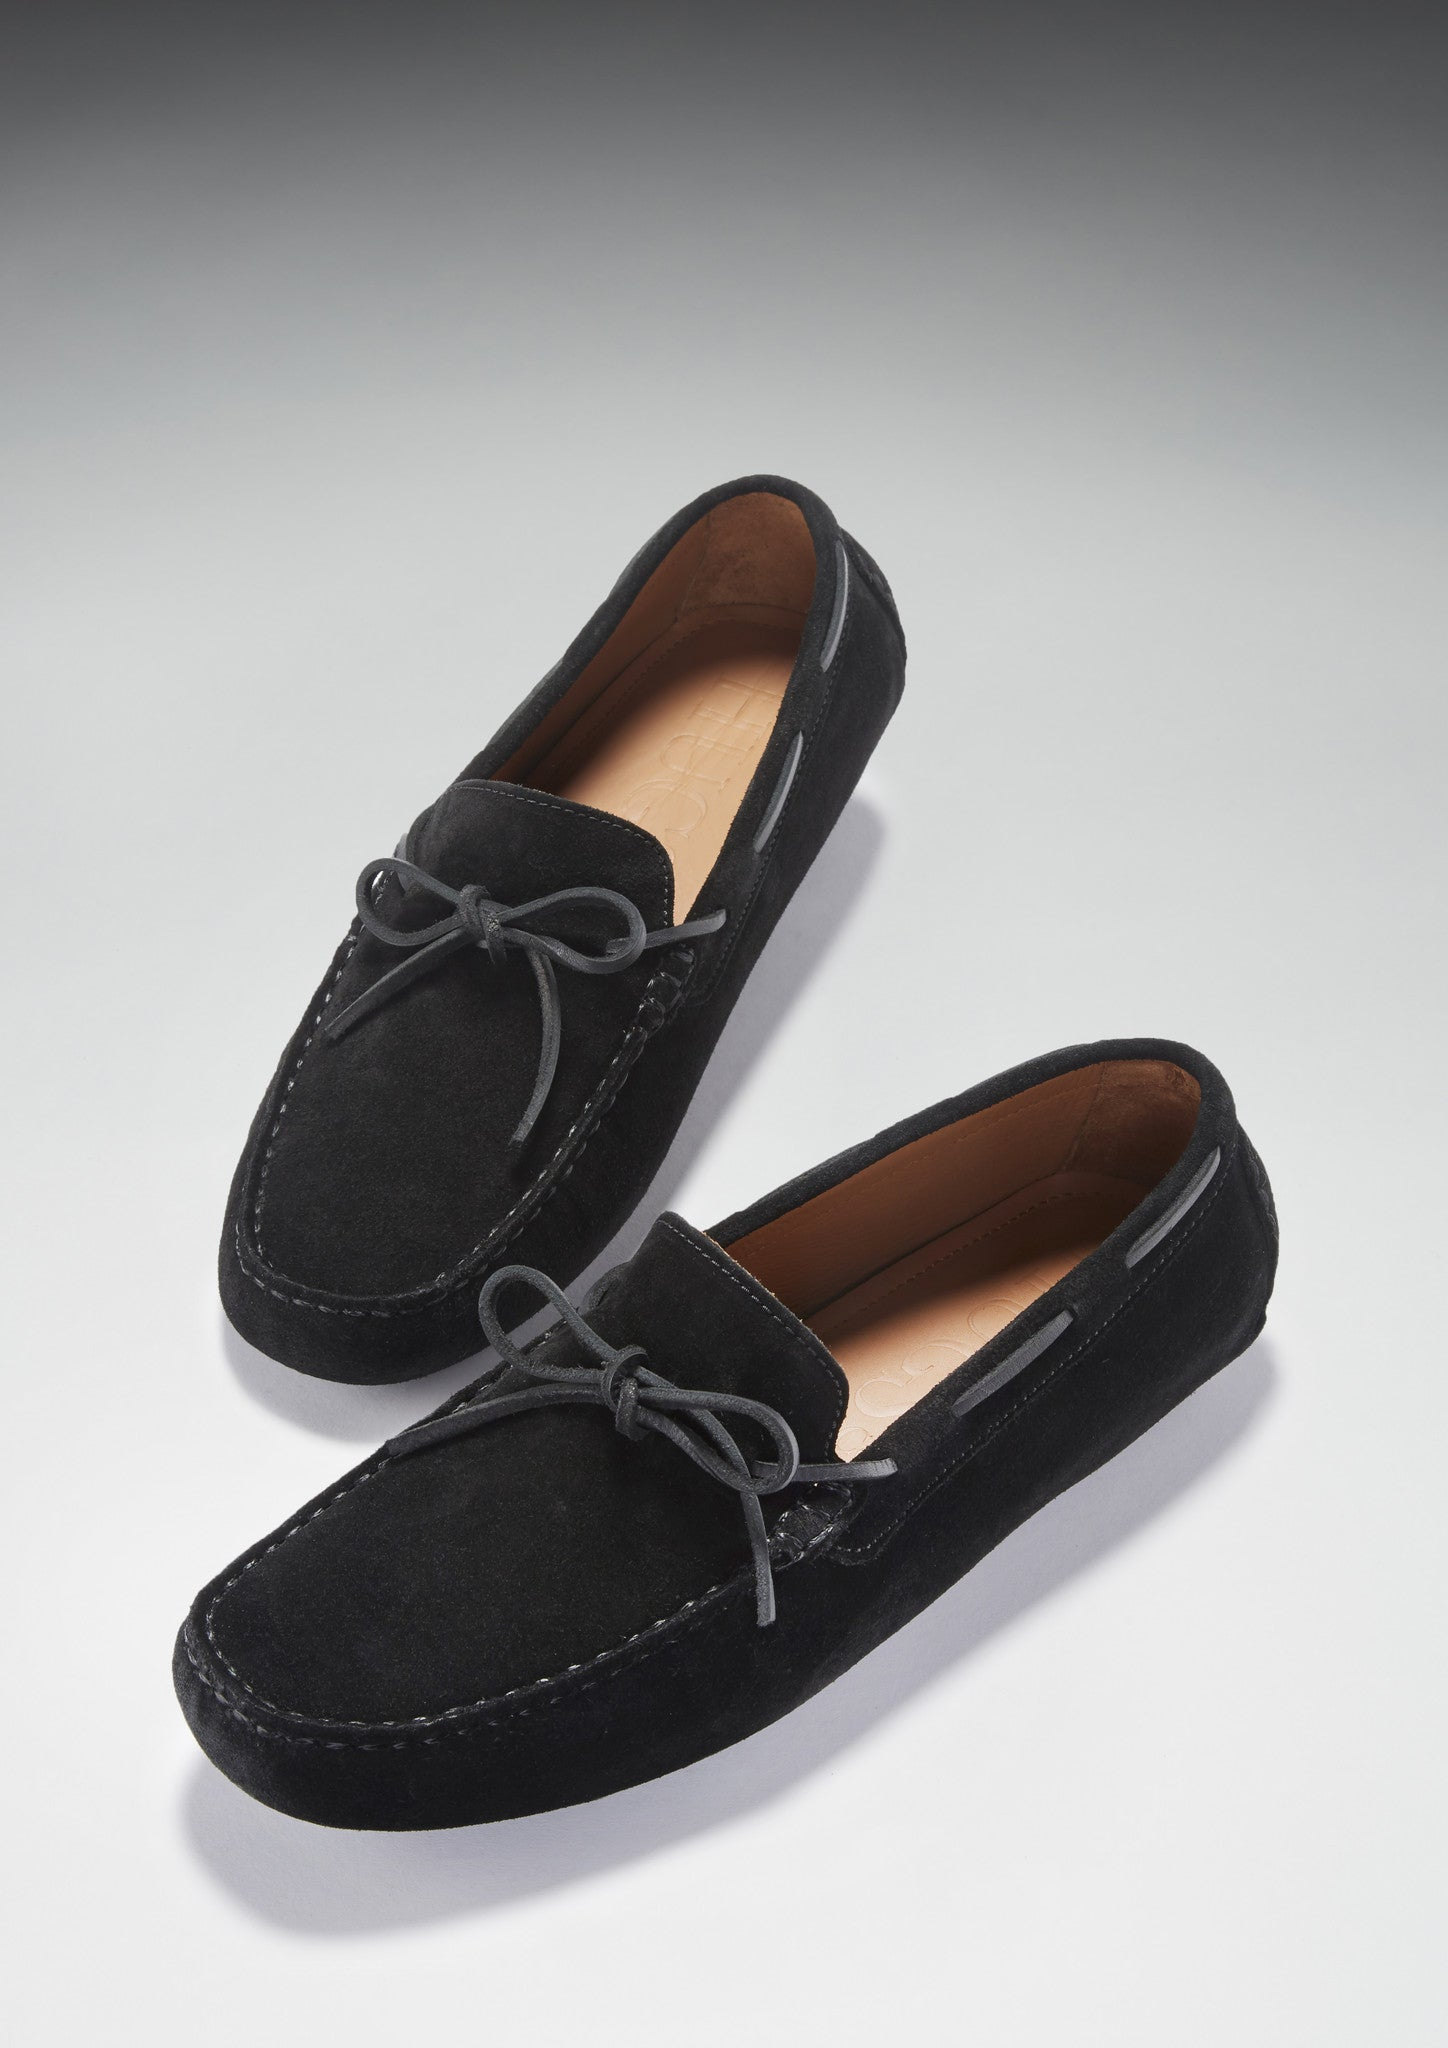 black driving loafers